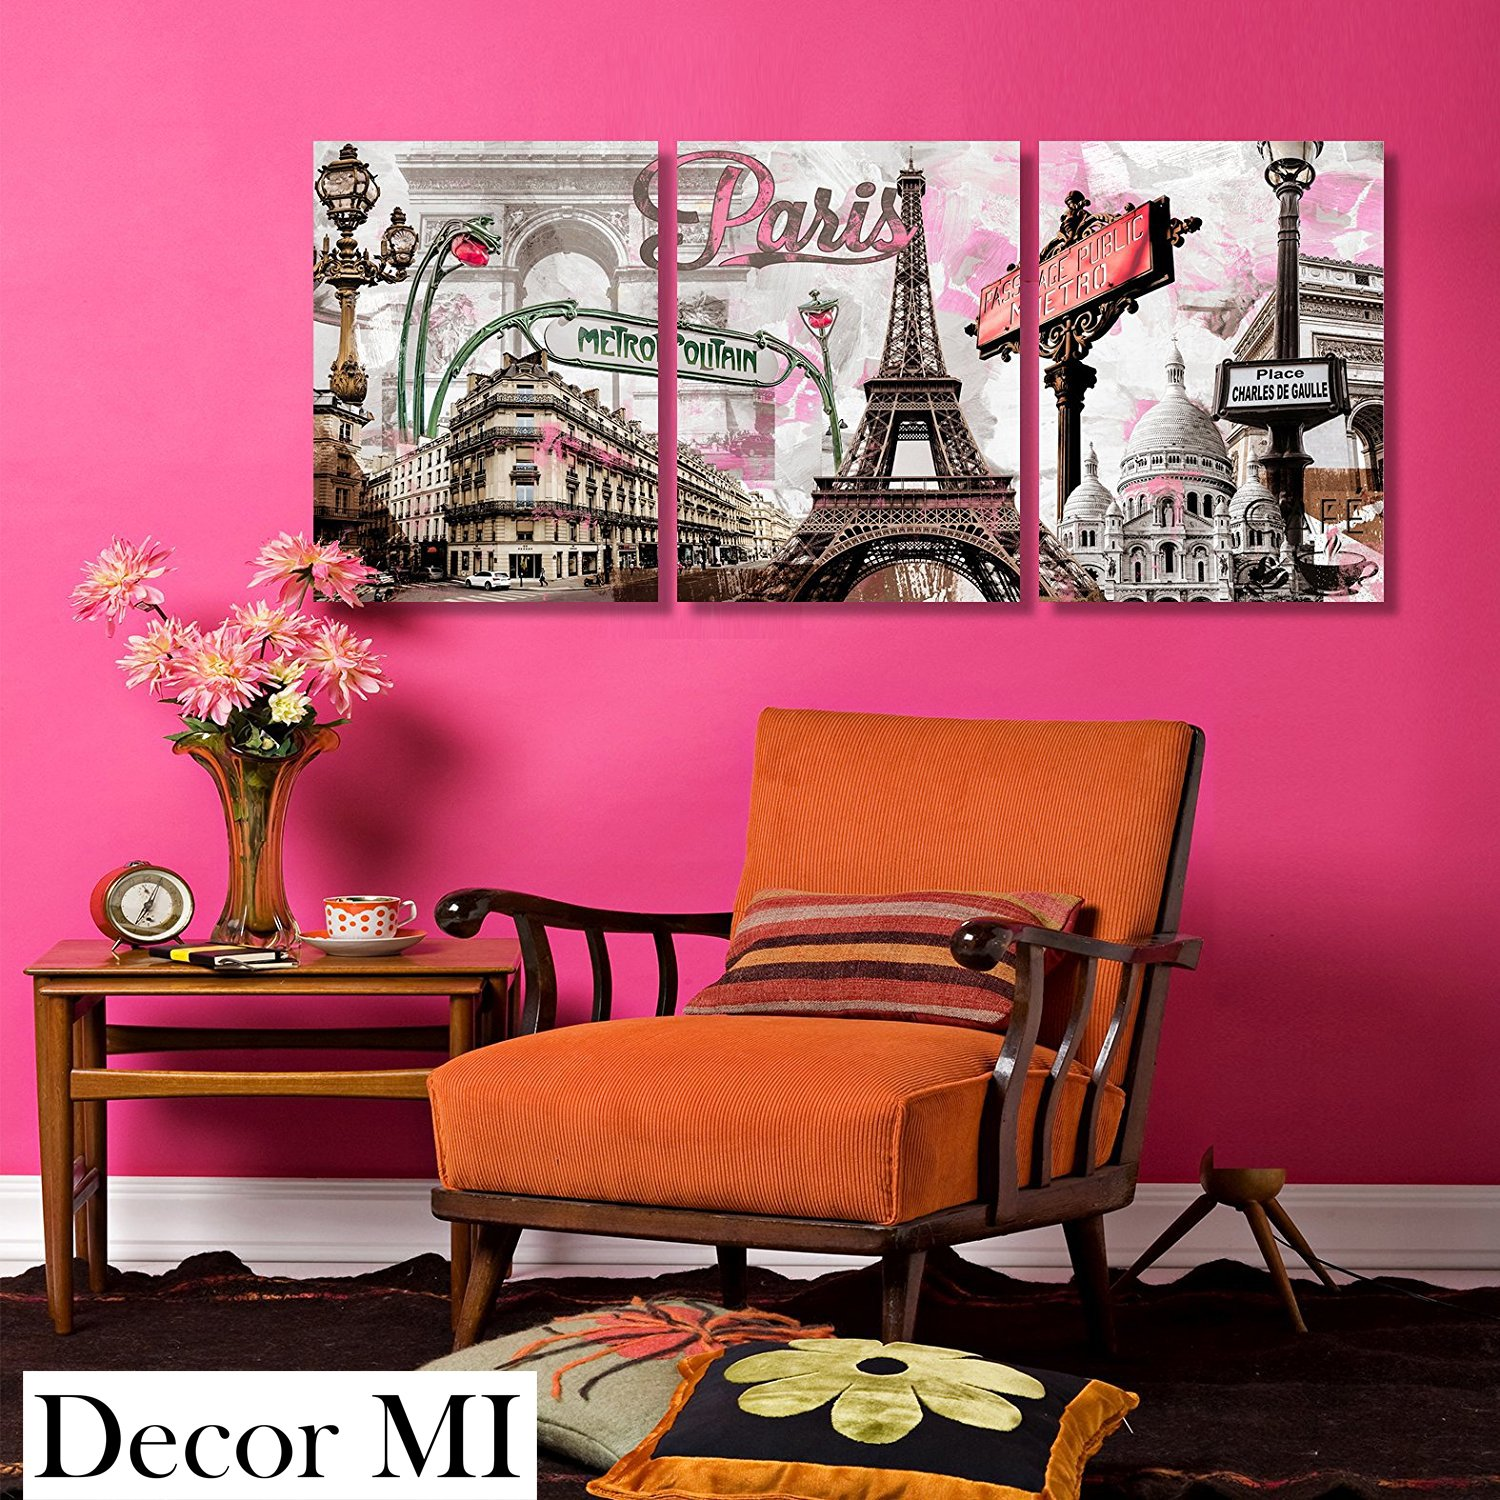 Decor Mi Modern Wall Art Pink Paris Eiffel Towel Decor Romantic City  Paintings Poster Prints On Part 88